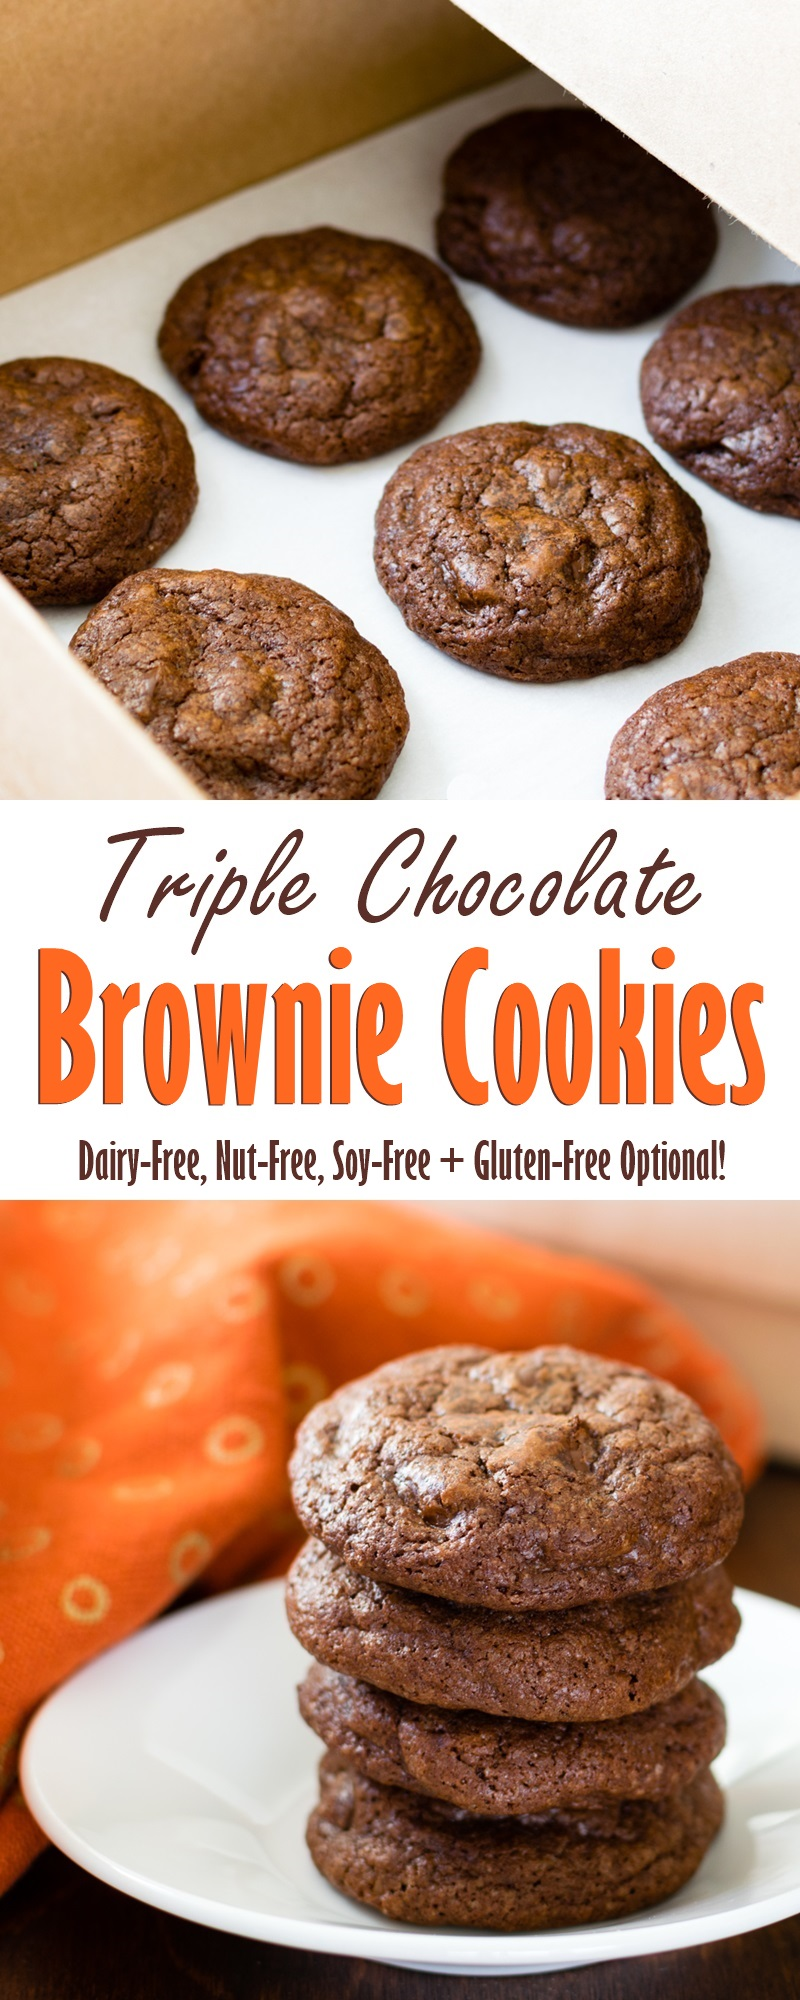 Triple Chocolate Brownie Cookies Recipe - surprisingly dairy-free, nut-free, soy-free deliciousness with gluten-free option!!